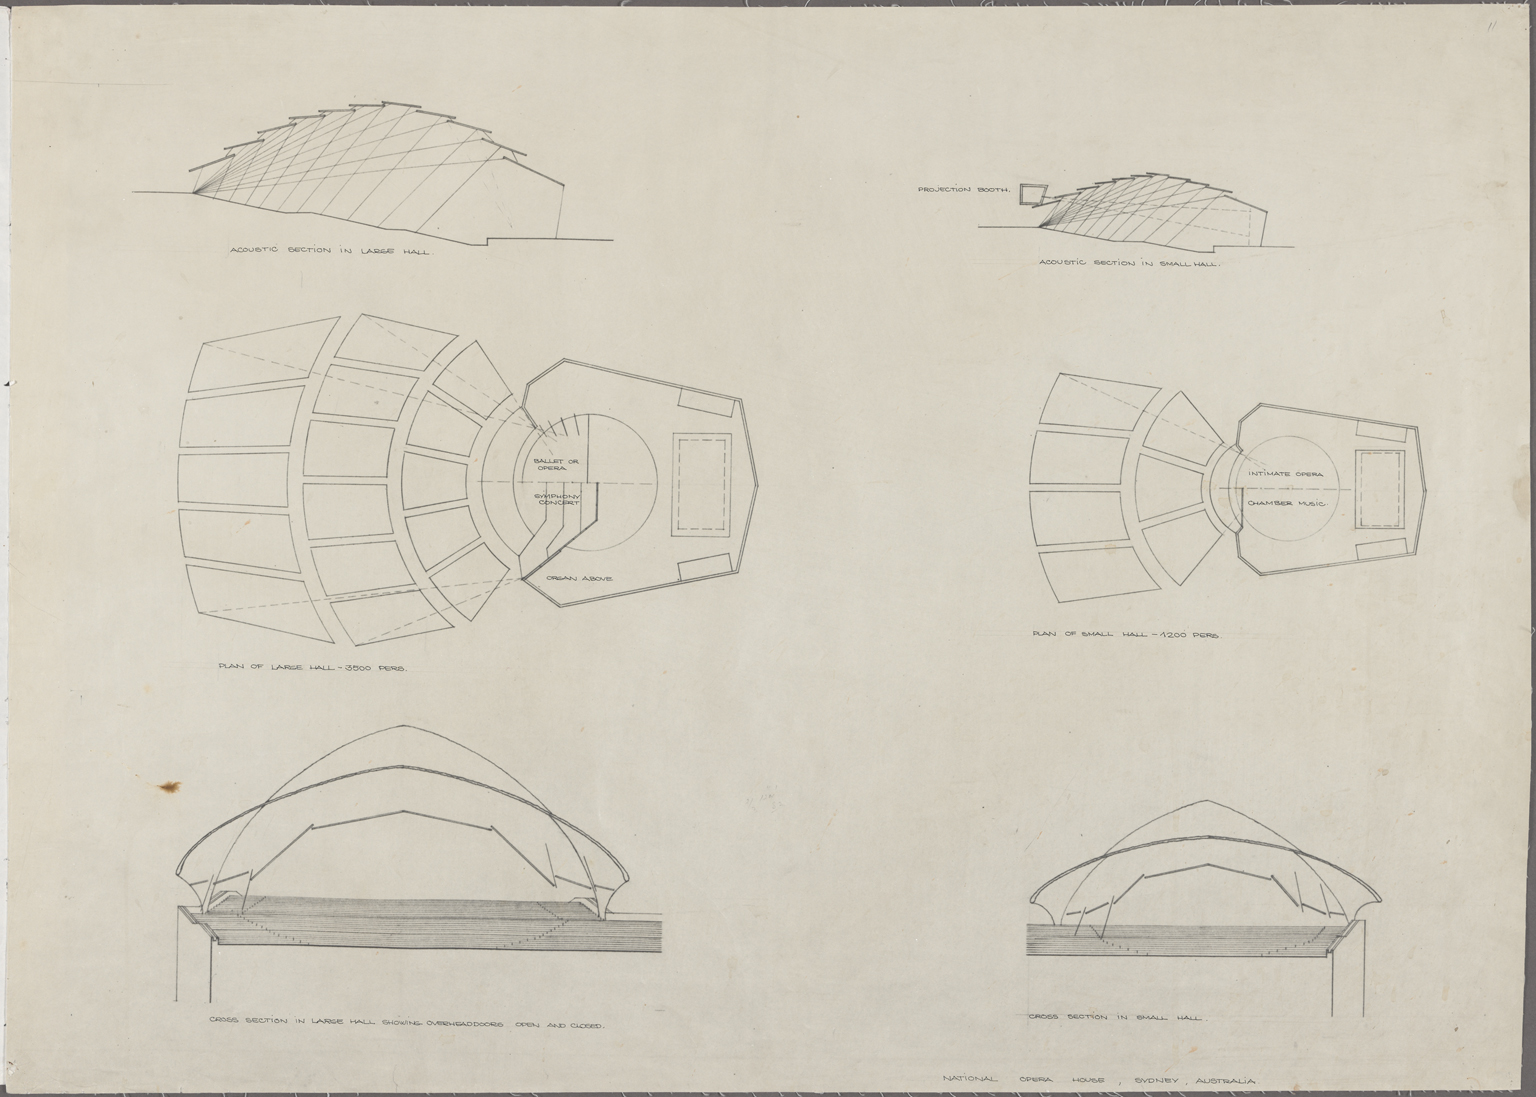 Acoustic section in large hall, Acoustic section in small hall, Plan of large hall, Plan of small hall, Cross section in large hall showing overhead doors, Cross section in small hall National Opera House, Sydney, Australia